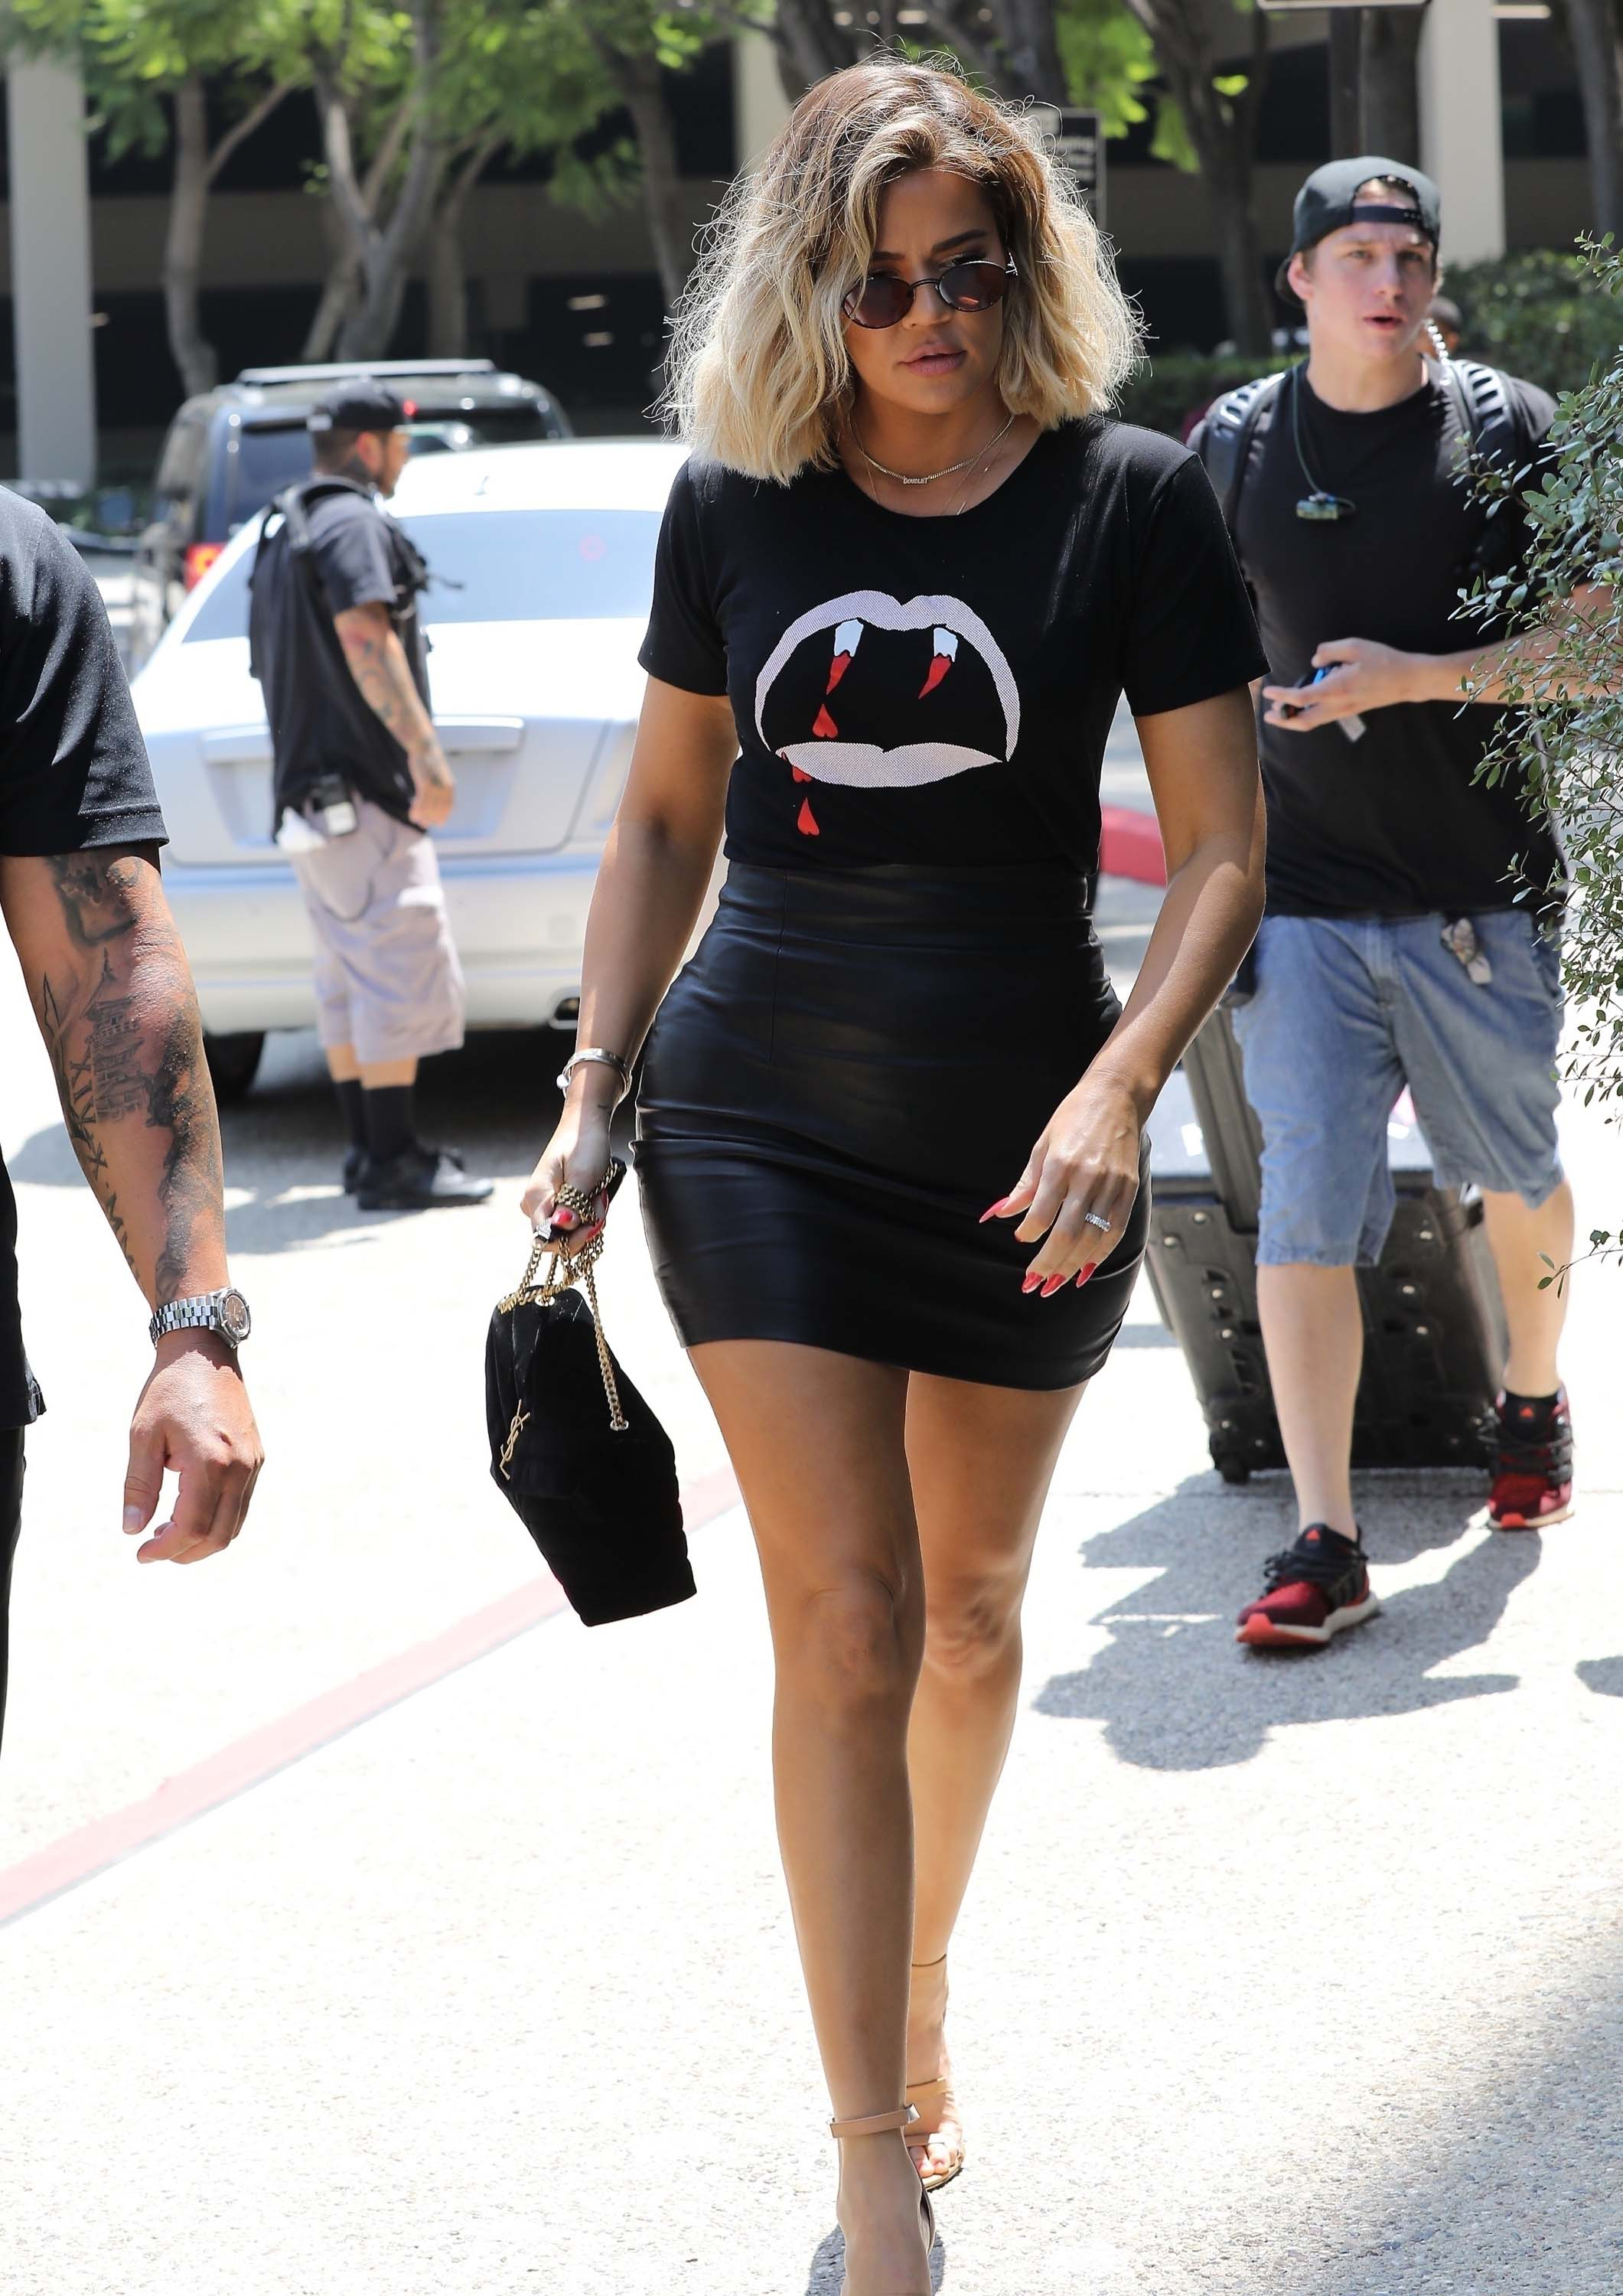 Khloe Kardashian met up for a family lunch